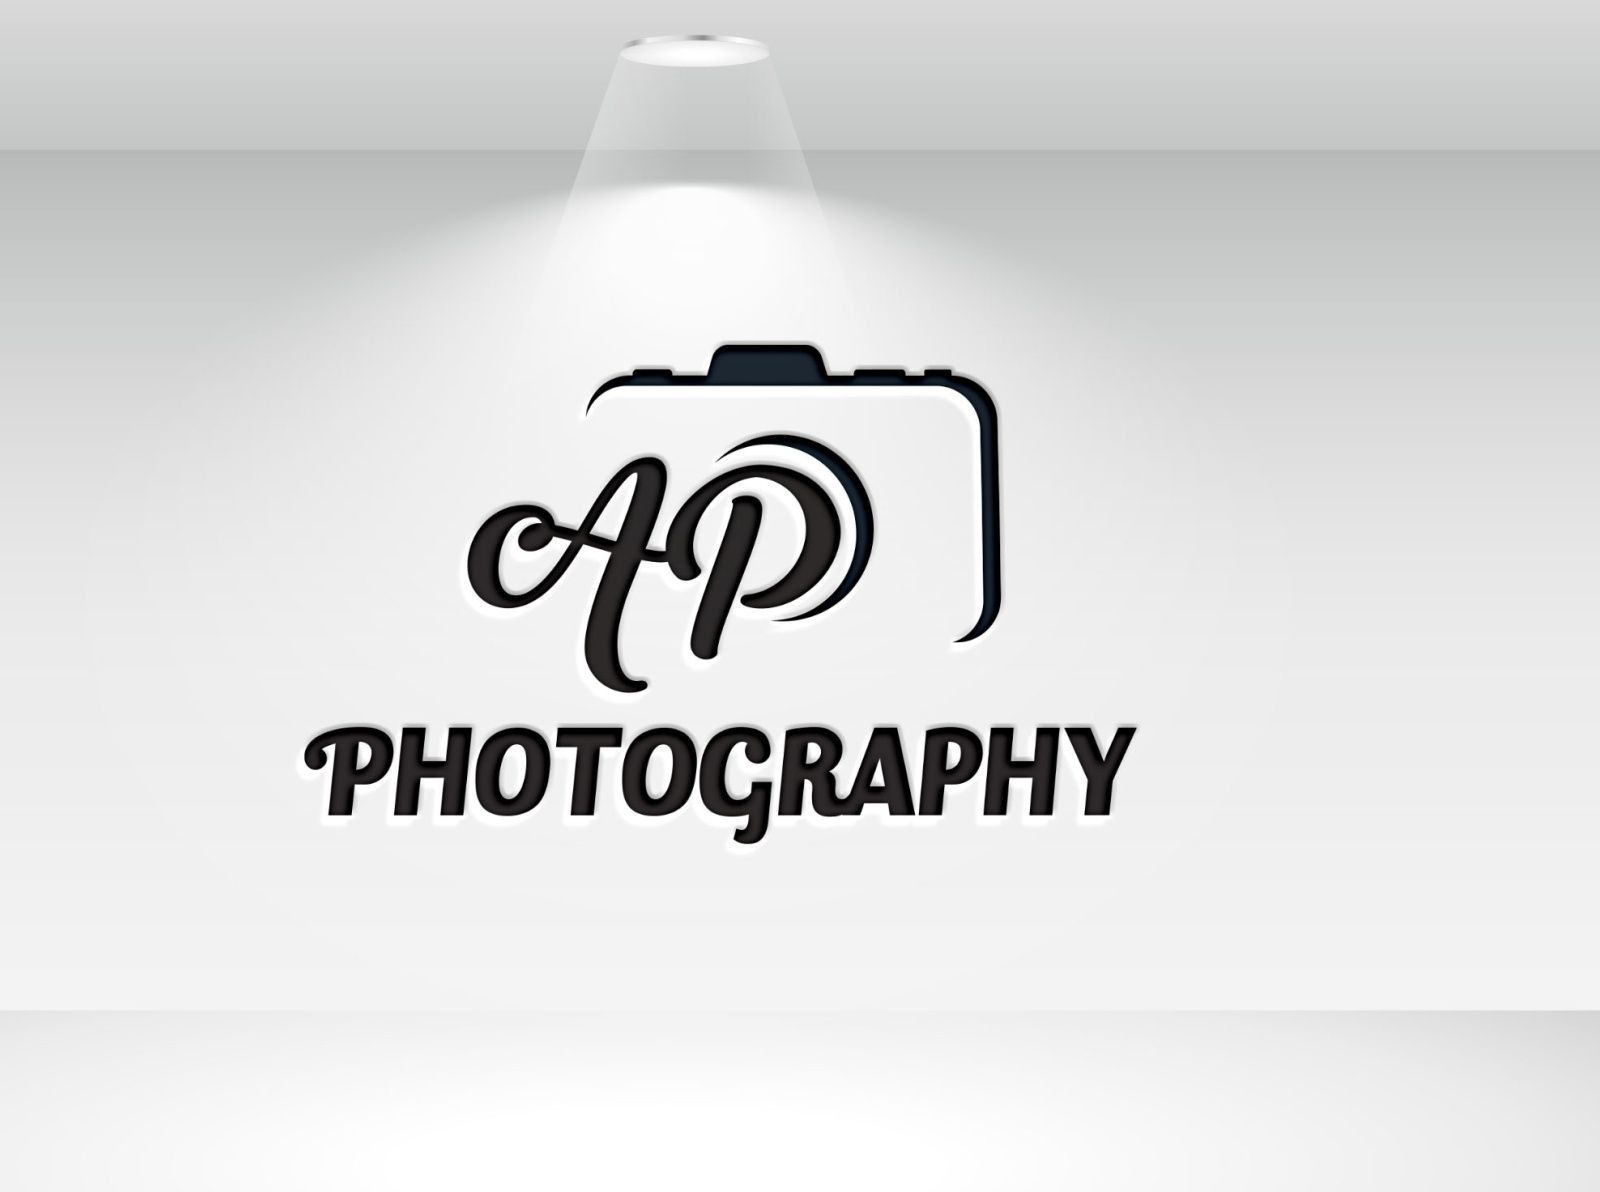 Pin By Pravin On P A In 2021 Photographers Logo Design Photography Logos Photography Name Logo